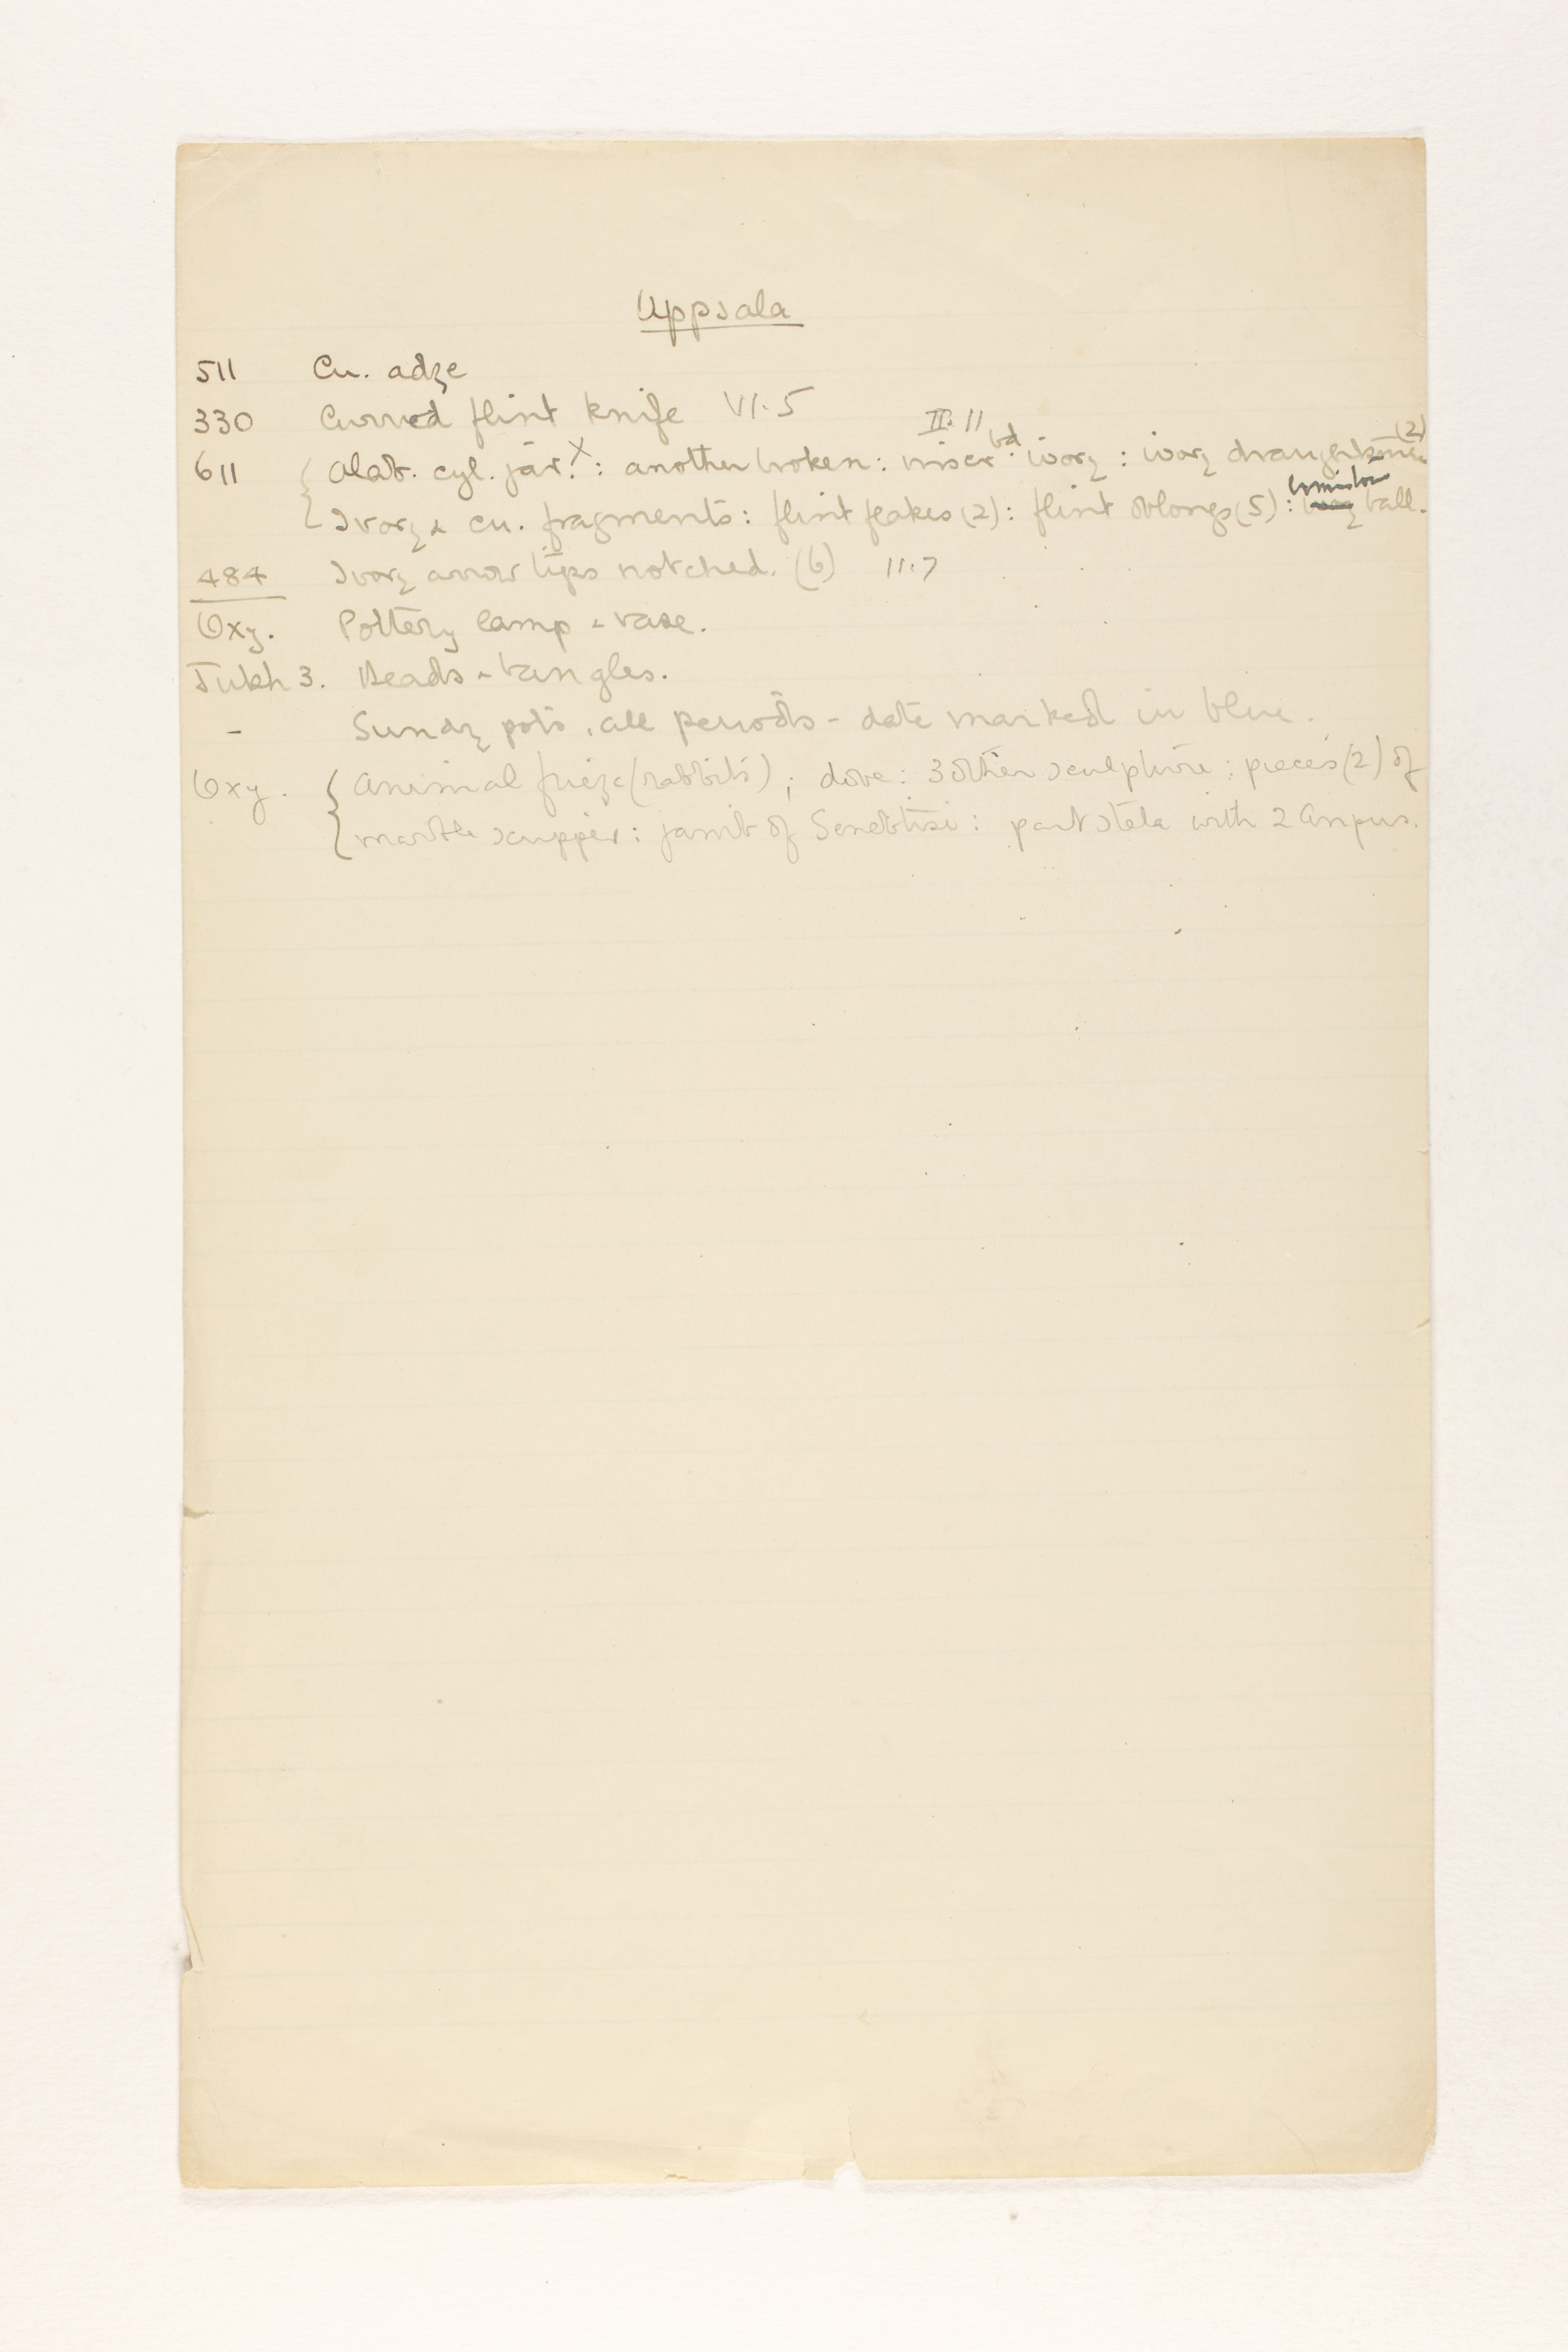 1921-22 Abydos, Oxyrhynchus Individual institution list PMA/WFP1/D/25/18